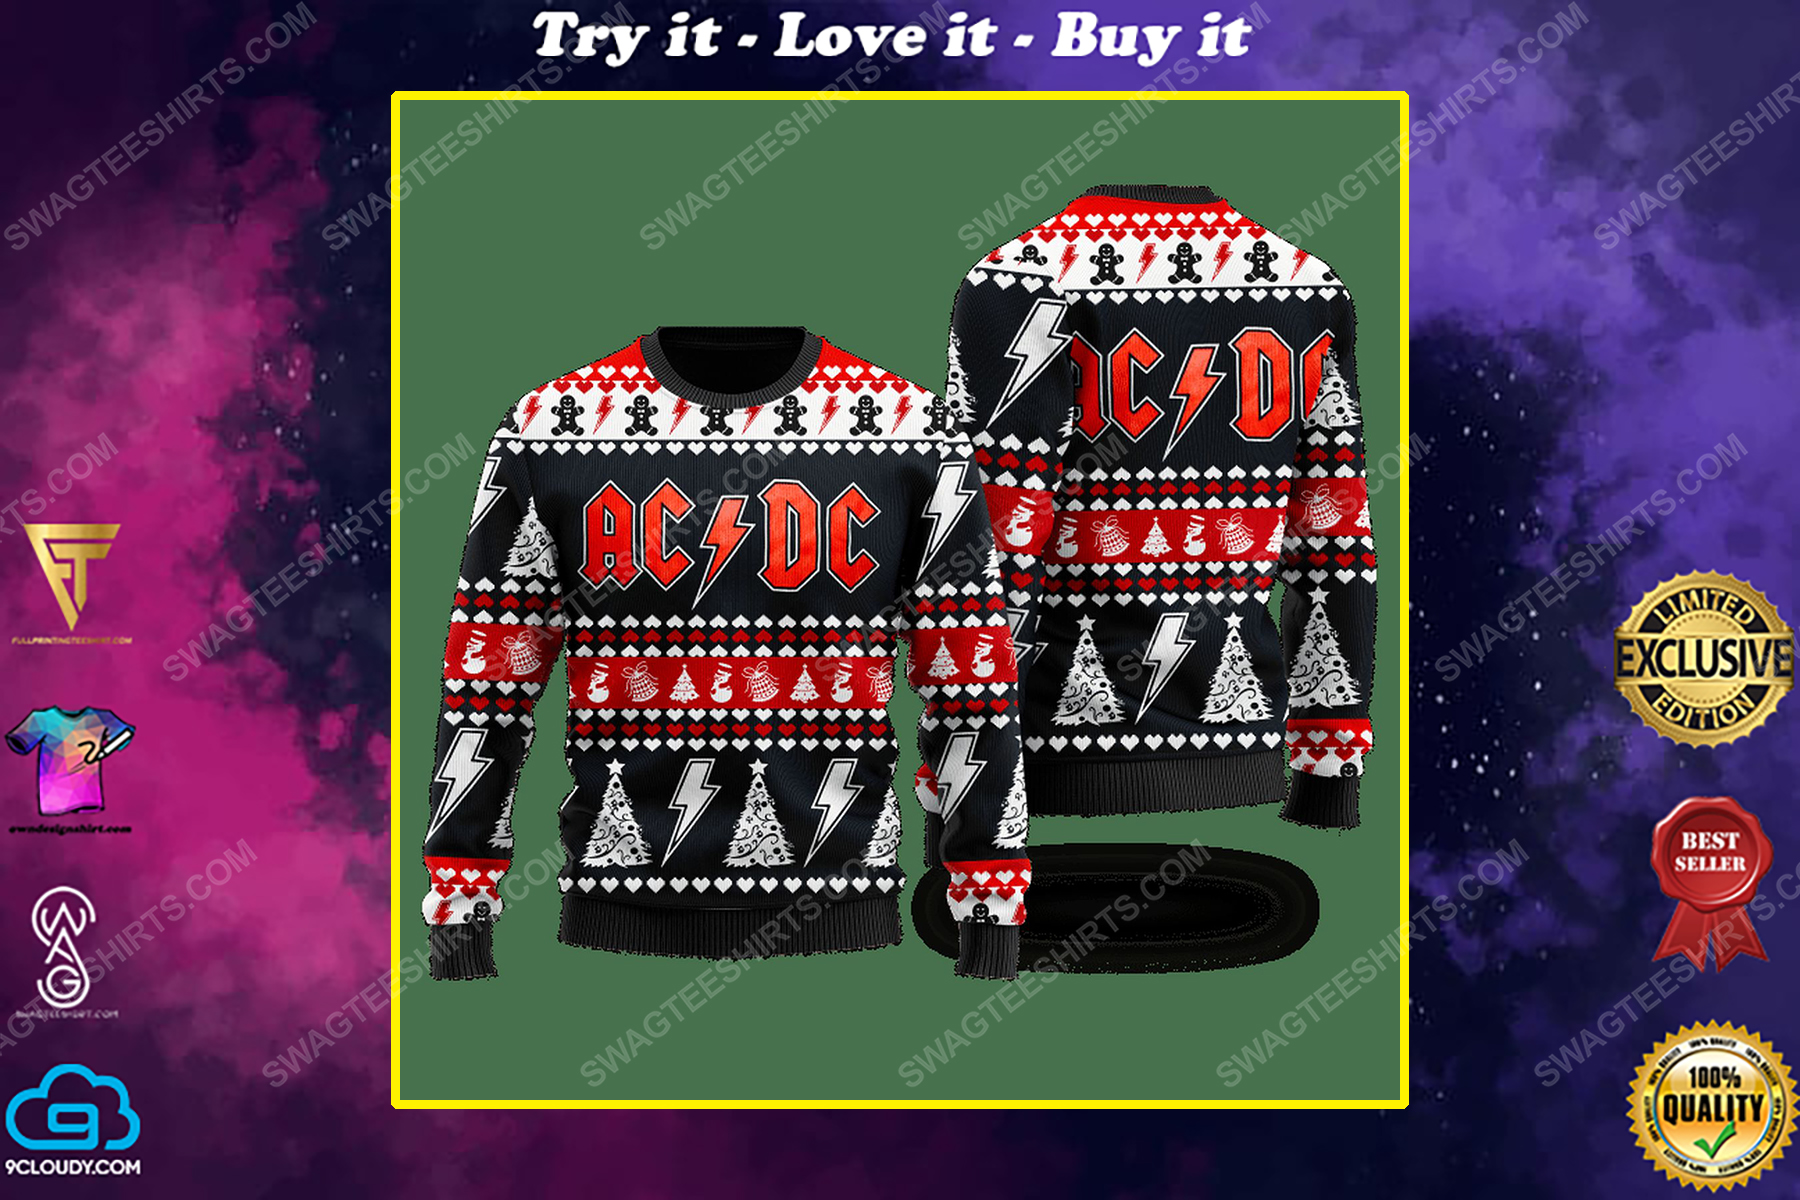 AC DC rock band ugly christmas sweater 1